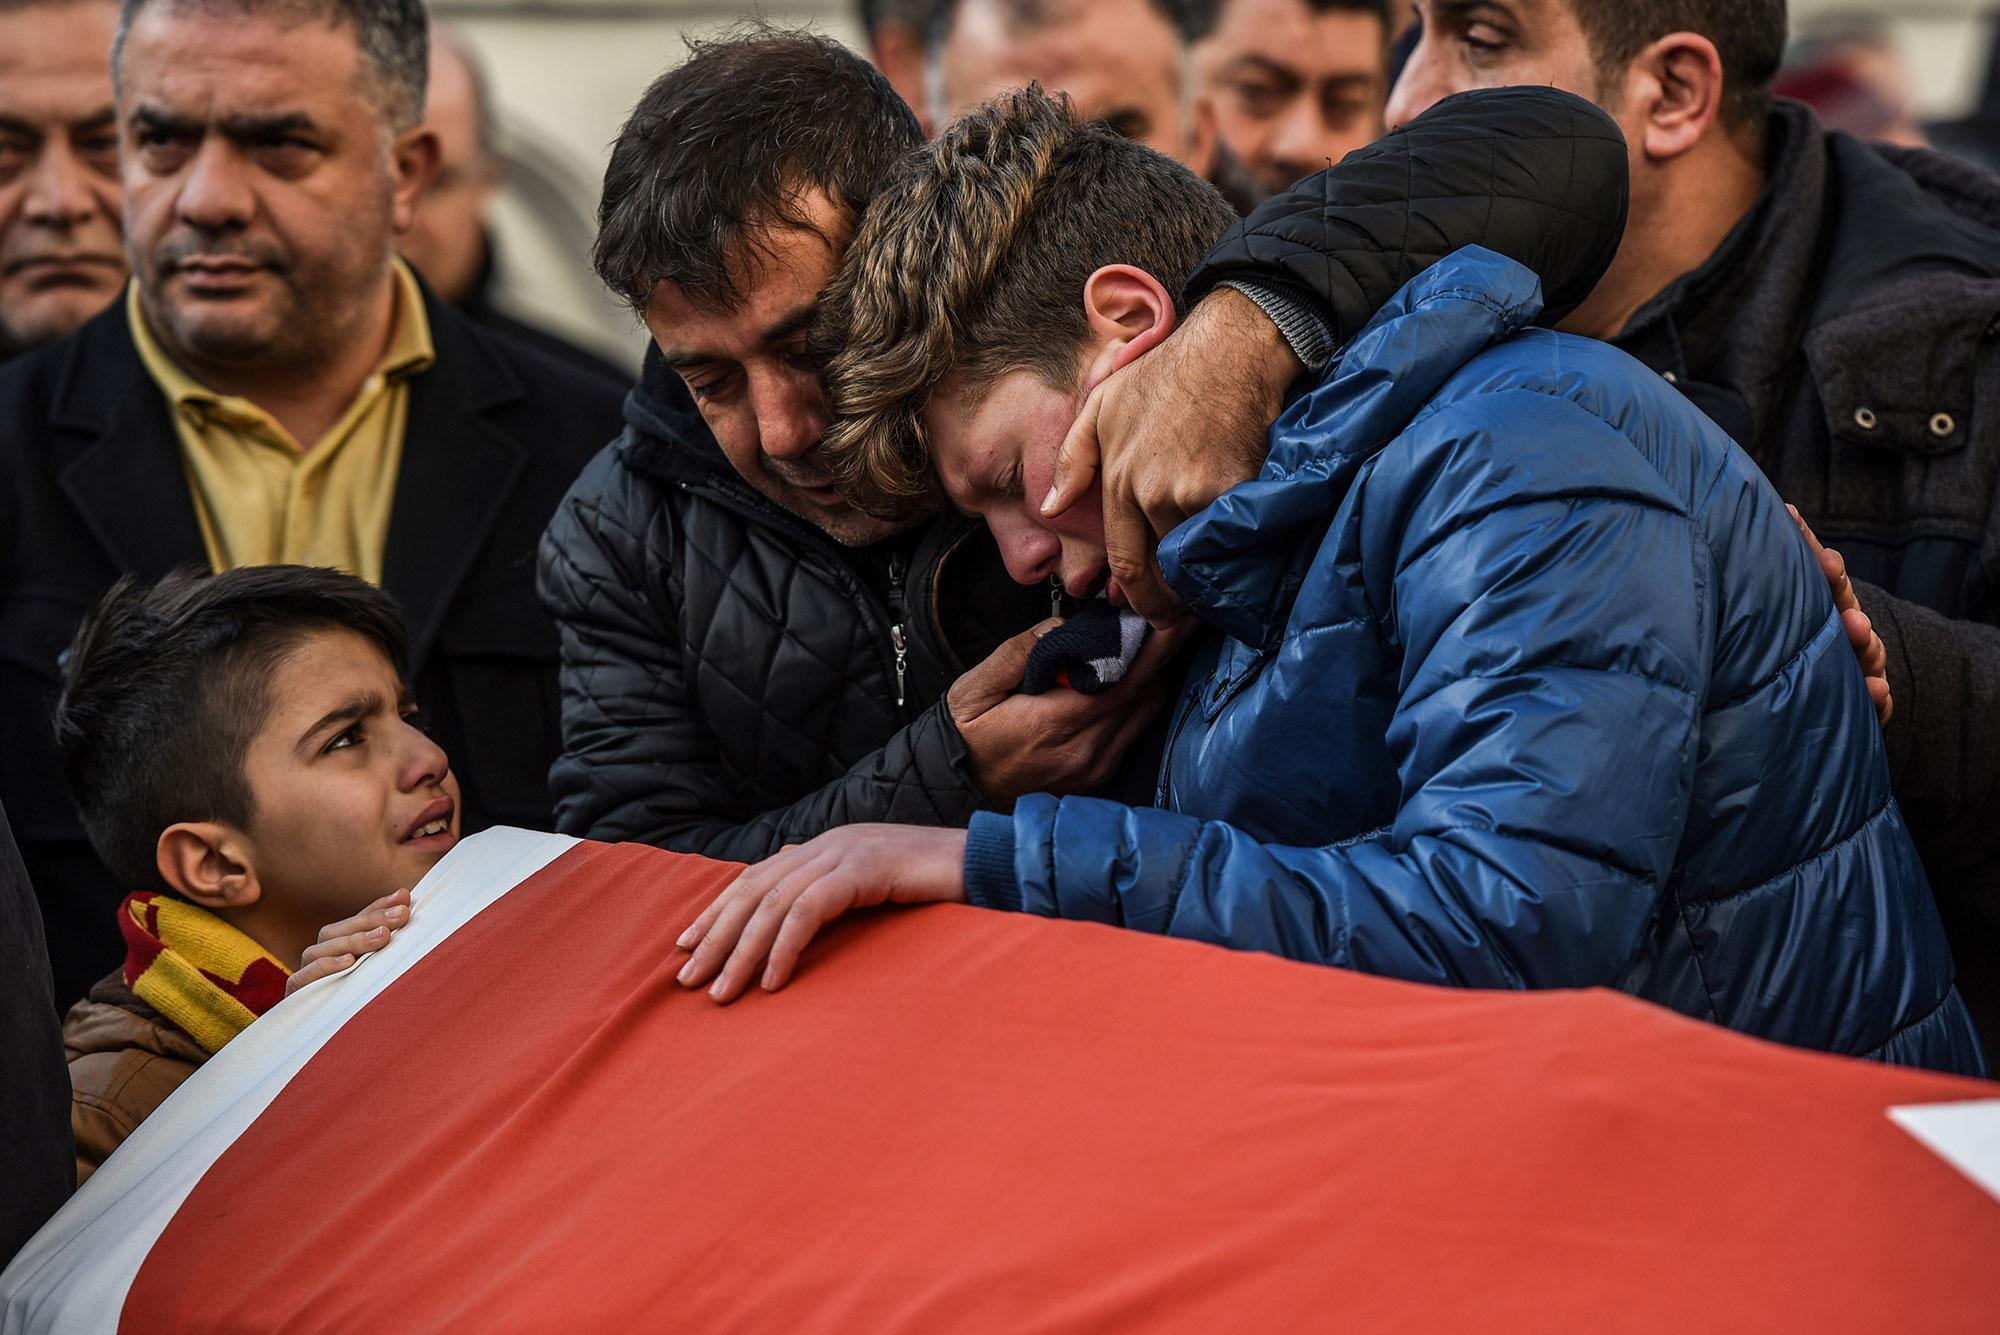 <p>JAN. 1, 2017 – Relatives of Ayhan Arik, one of the victims of the Reina night club attack mourn during his funeral ceremony in Istanbul.<br> Thirty-nine people, including many foreigners, were killed early on January 1, 2016 when a gunman went on a rampage at an exclusive nightclub in Istanbul where revellers were celebrating the New Year. (Photo: Ozan Kose/AFP/Getty Images) </p>